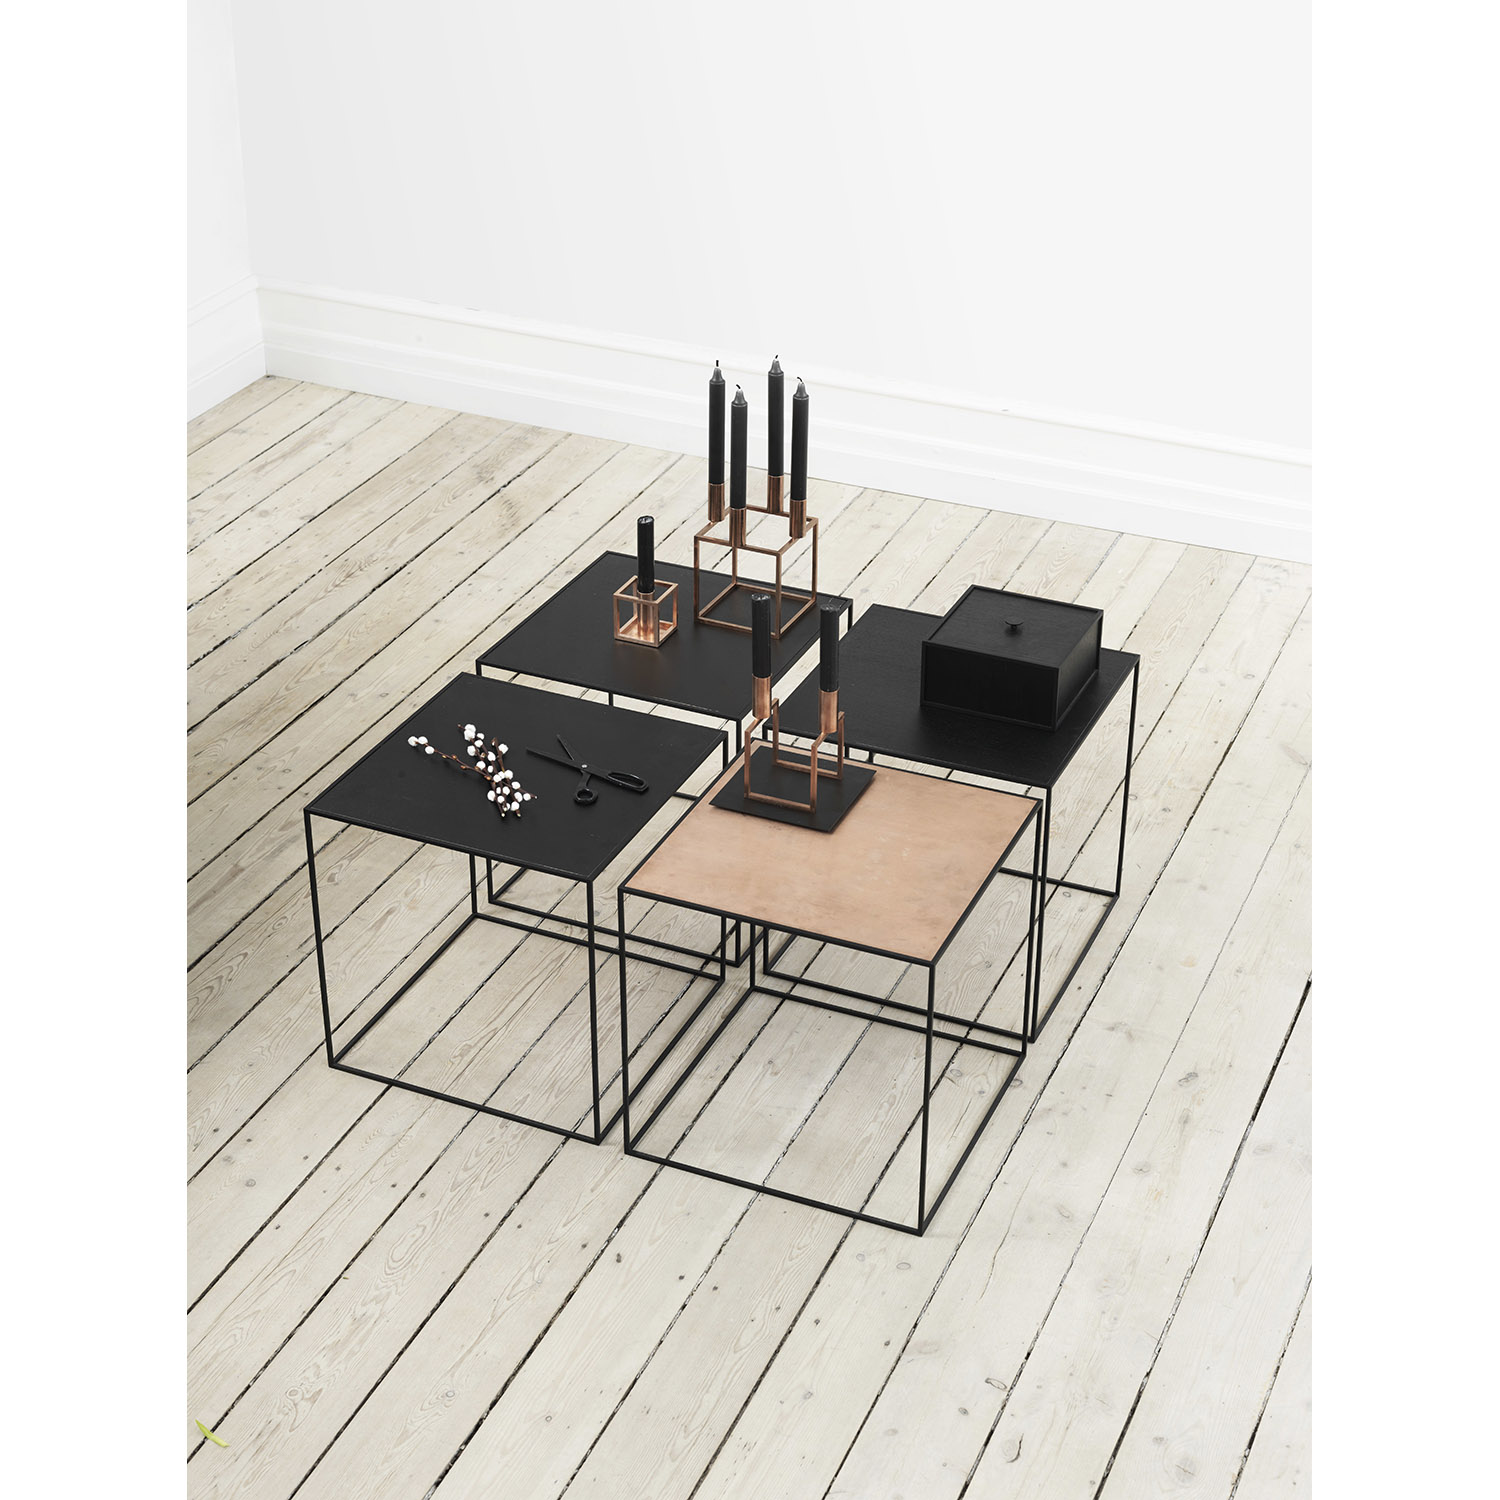 Twin Table 42 sidobord, svart/cool grey